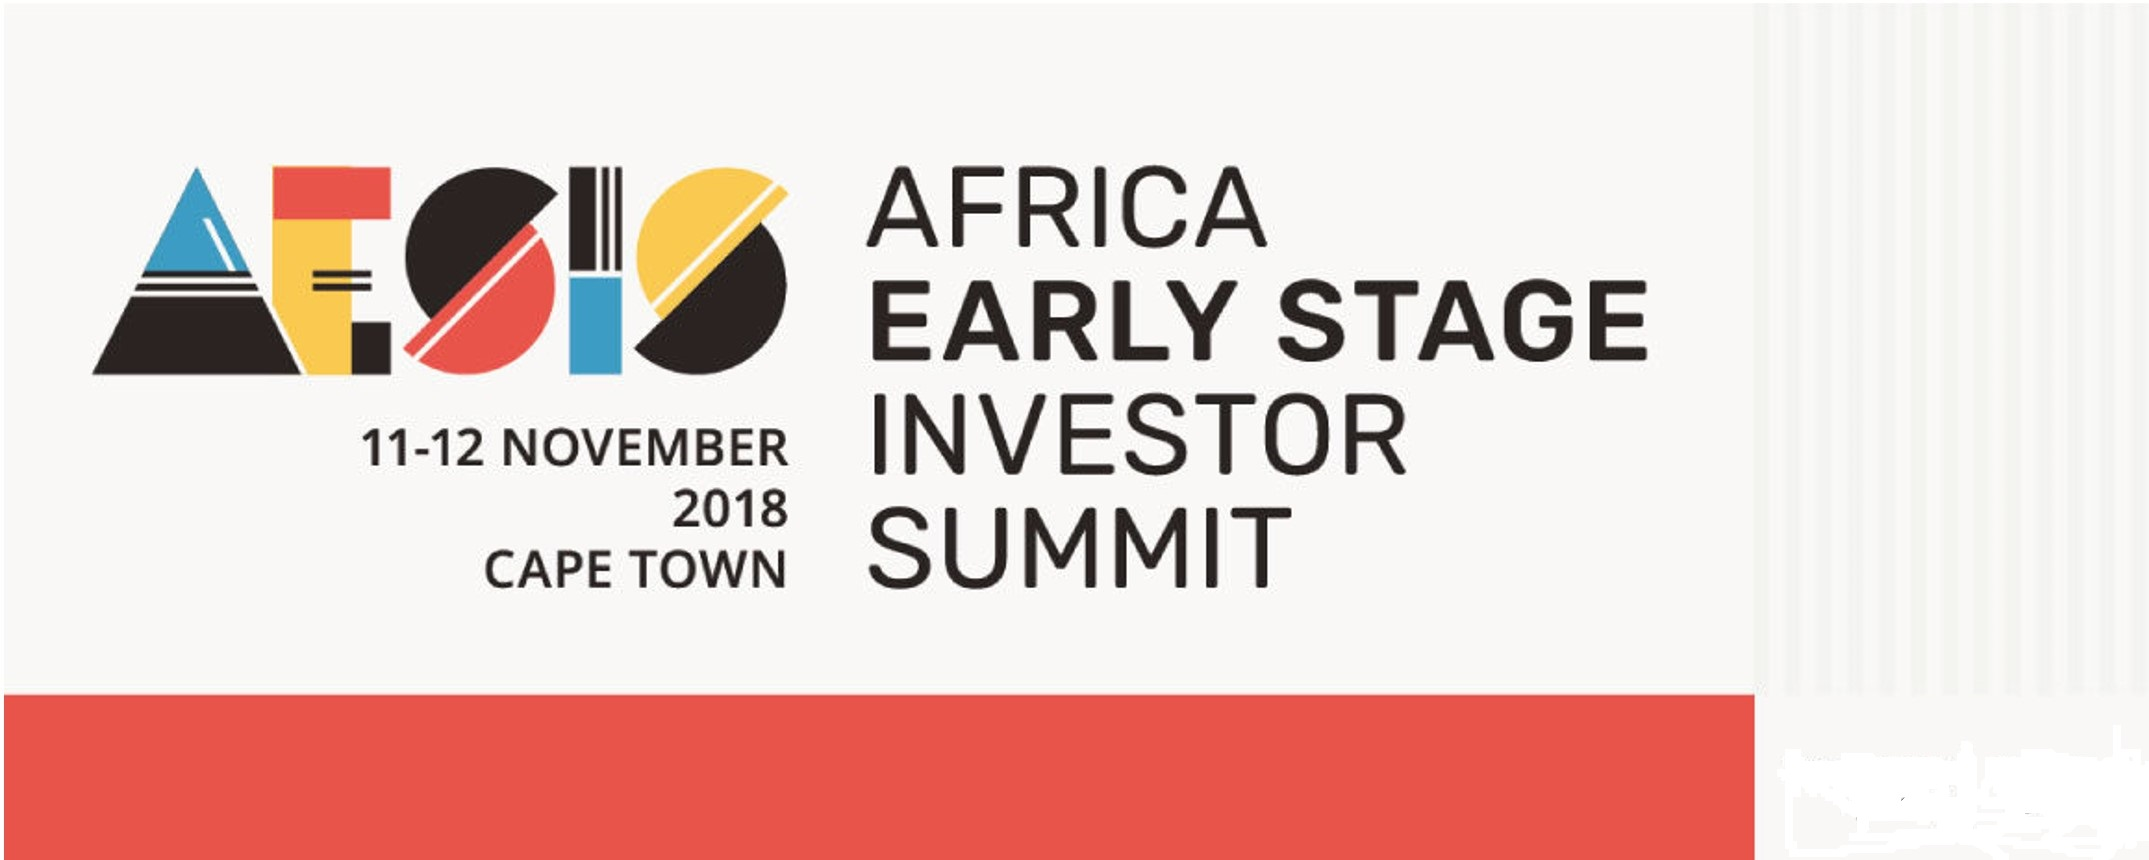 Venture Capital for Africa - Africa Early Stage Investor Summit 2018 Movemeback African event cover image